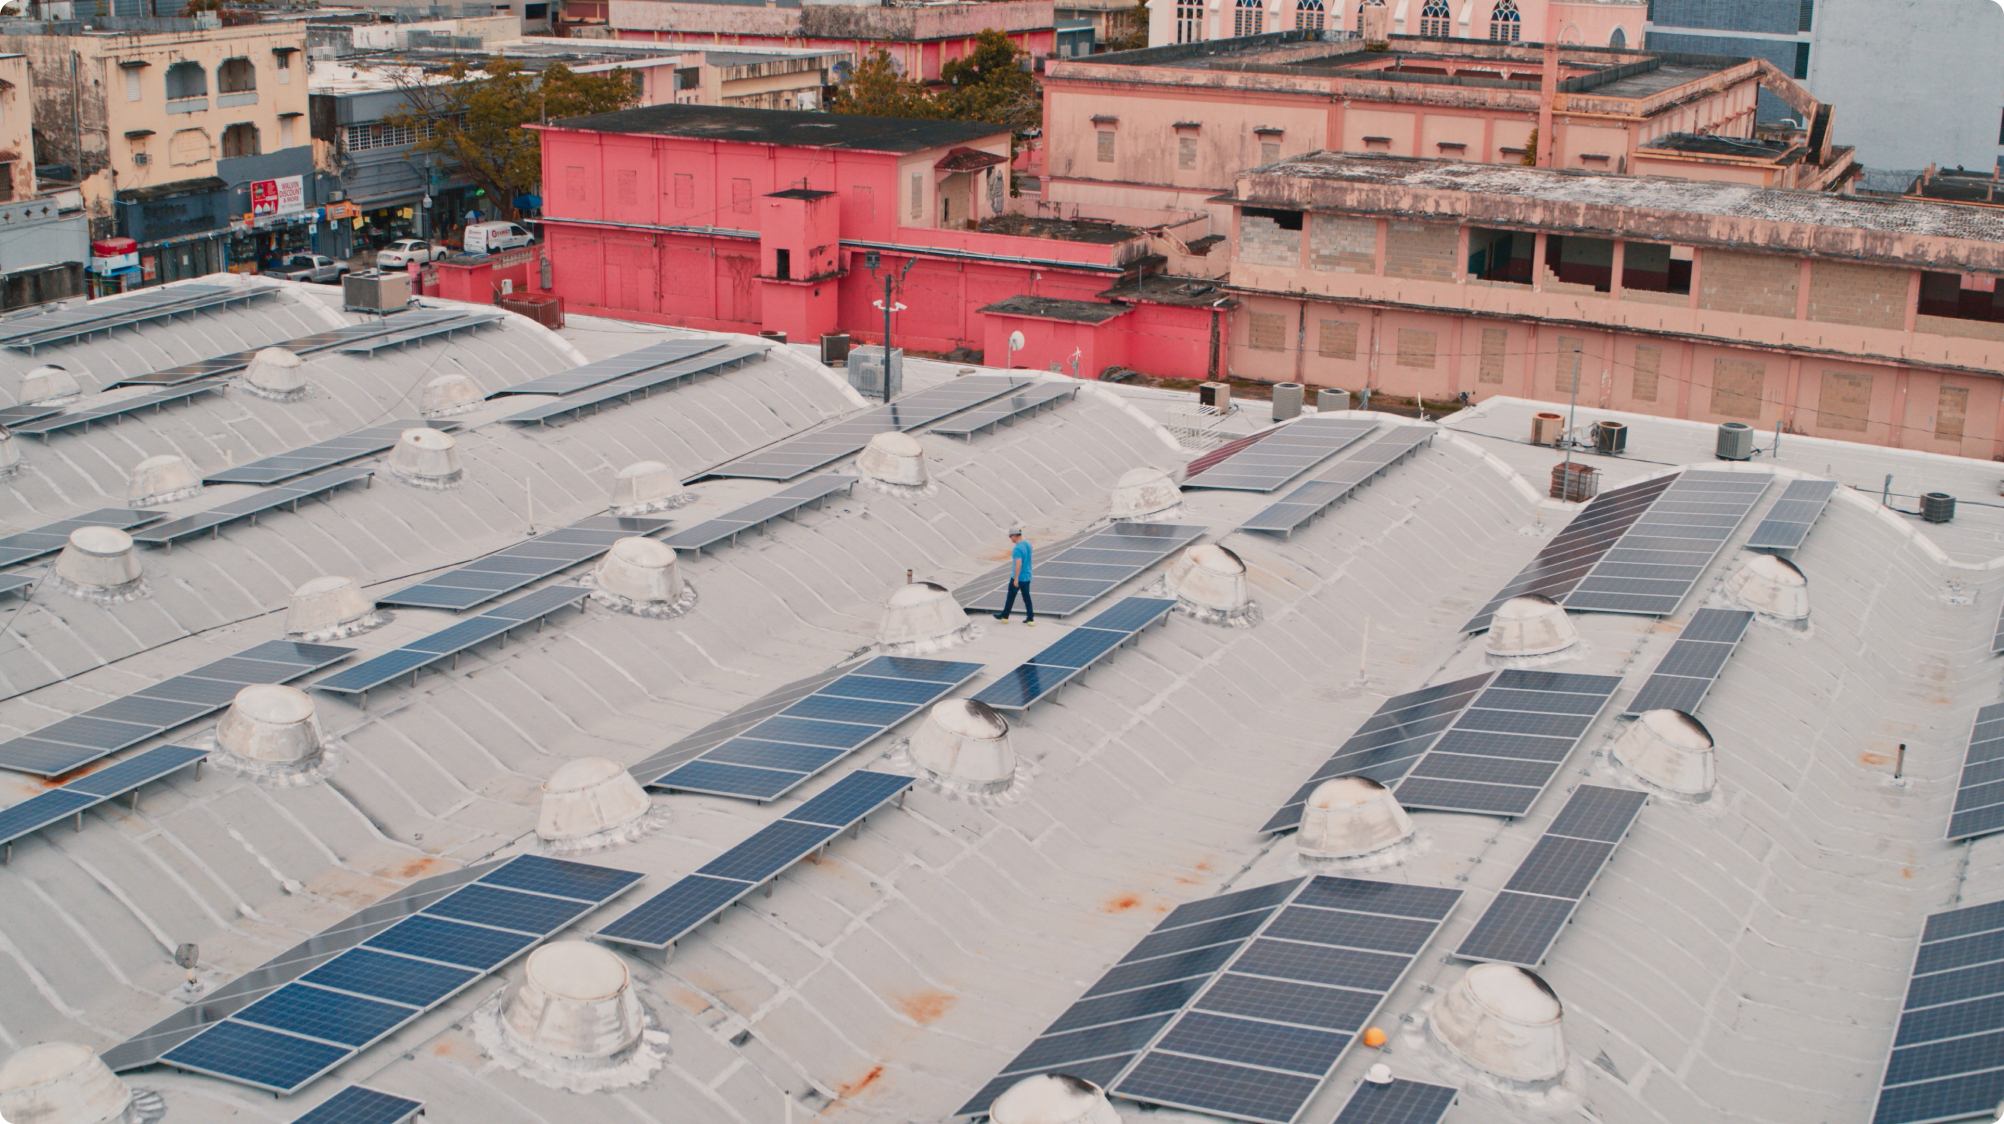 Image of Googler on rooftop with solar panels.